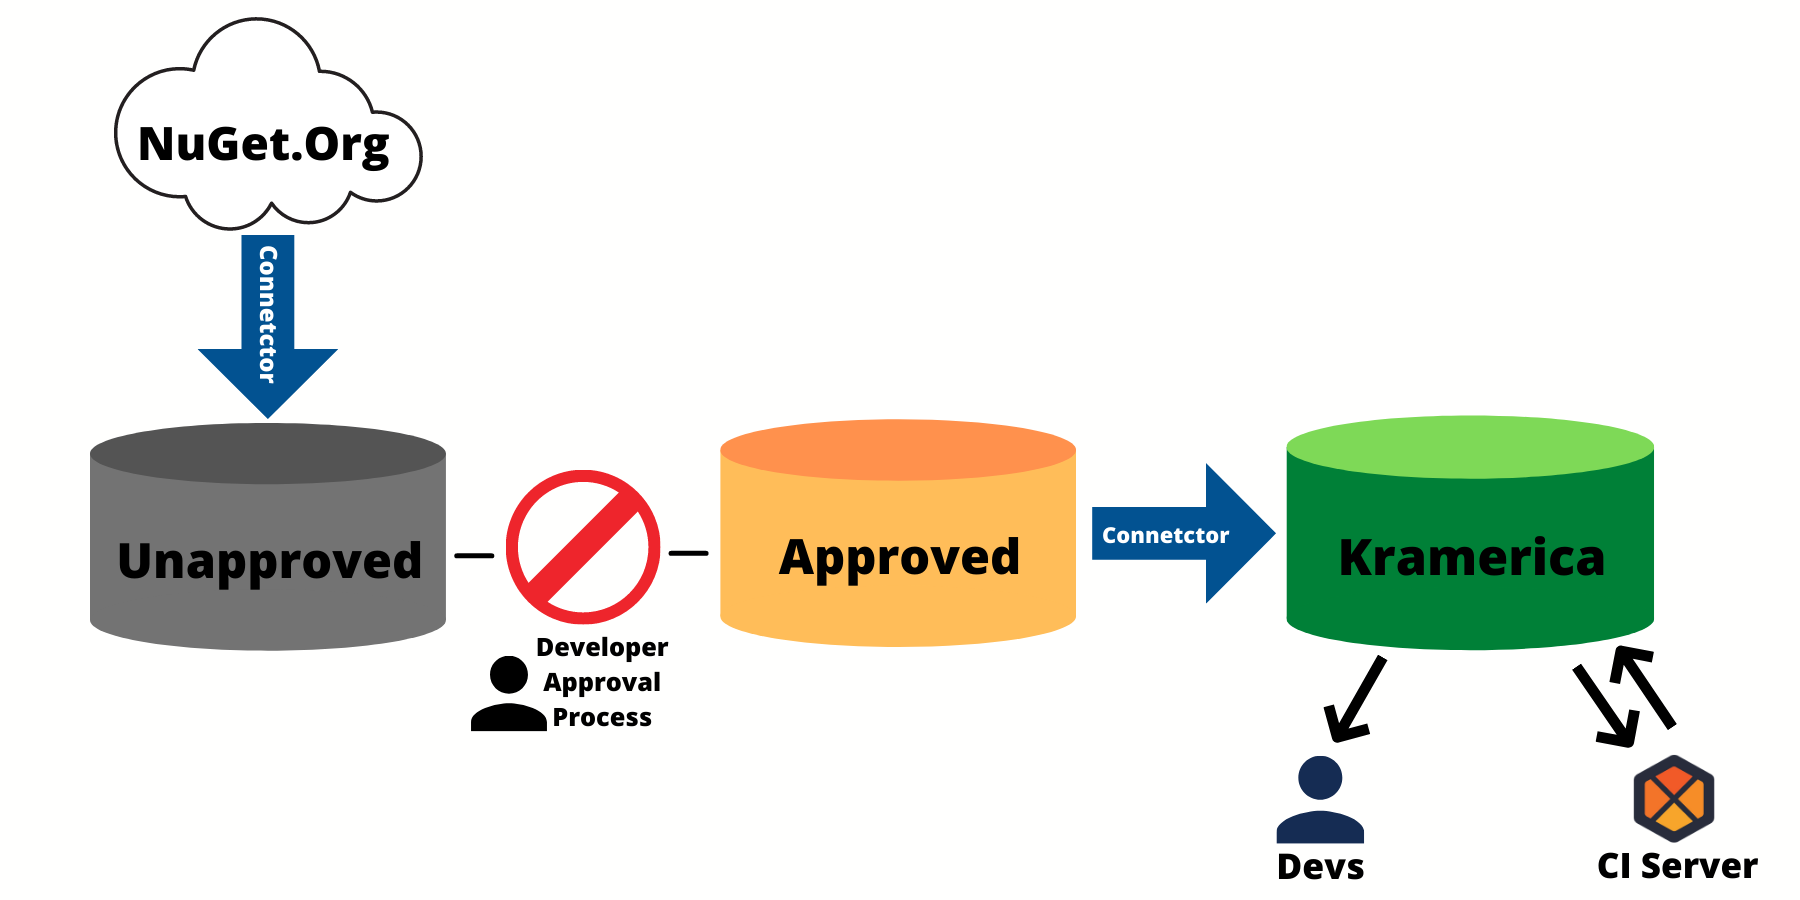 How to Create a Package Approval Workflow for NuGet